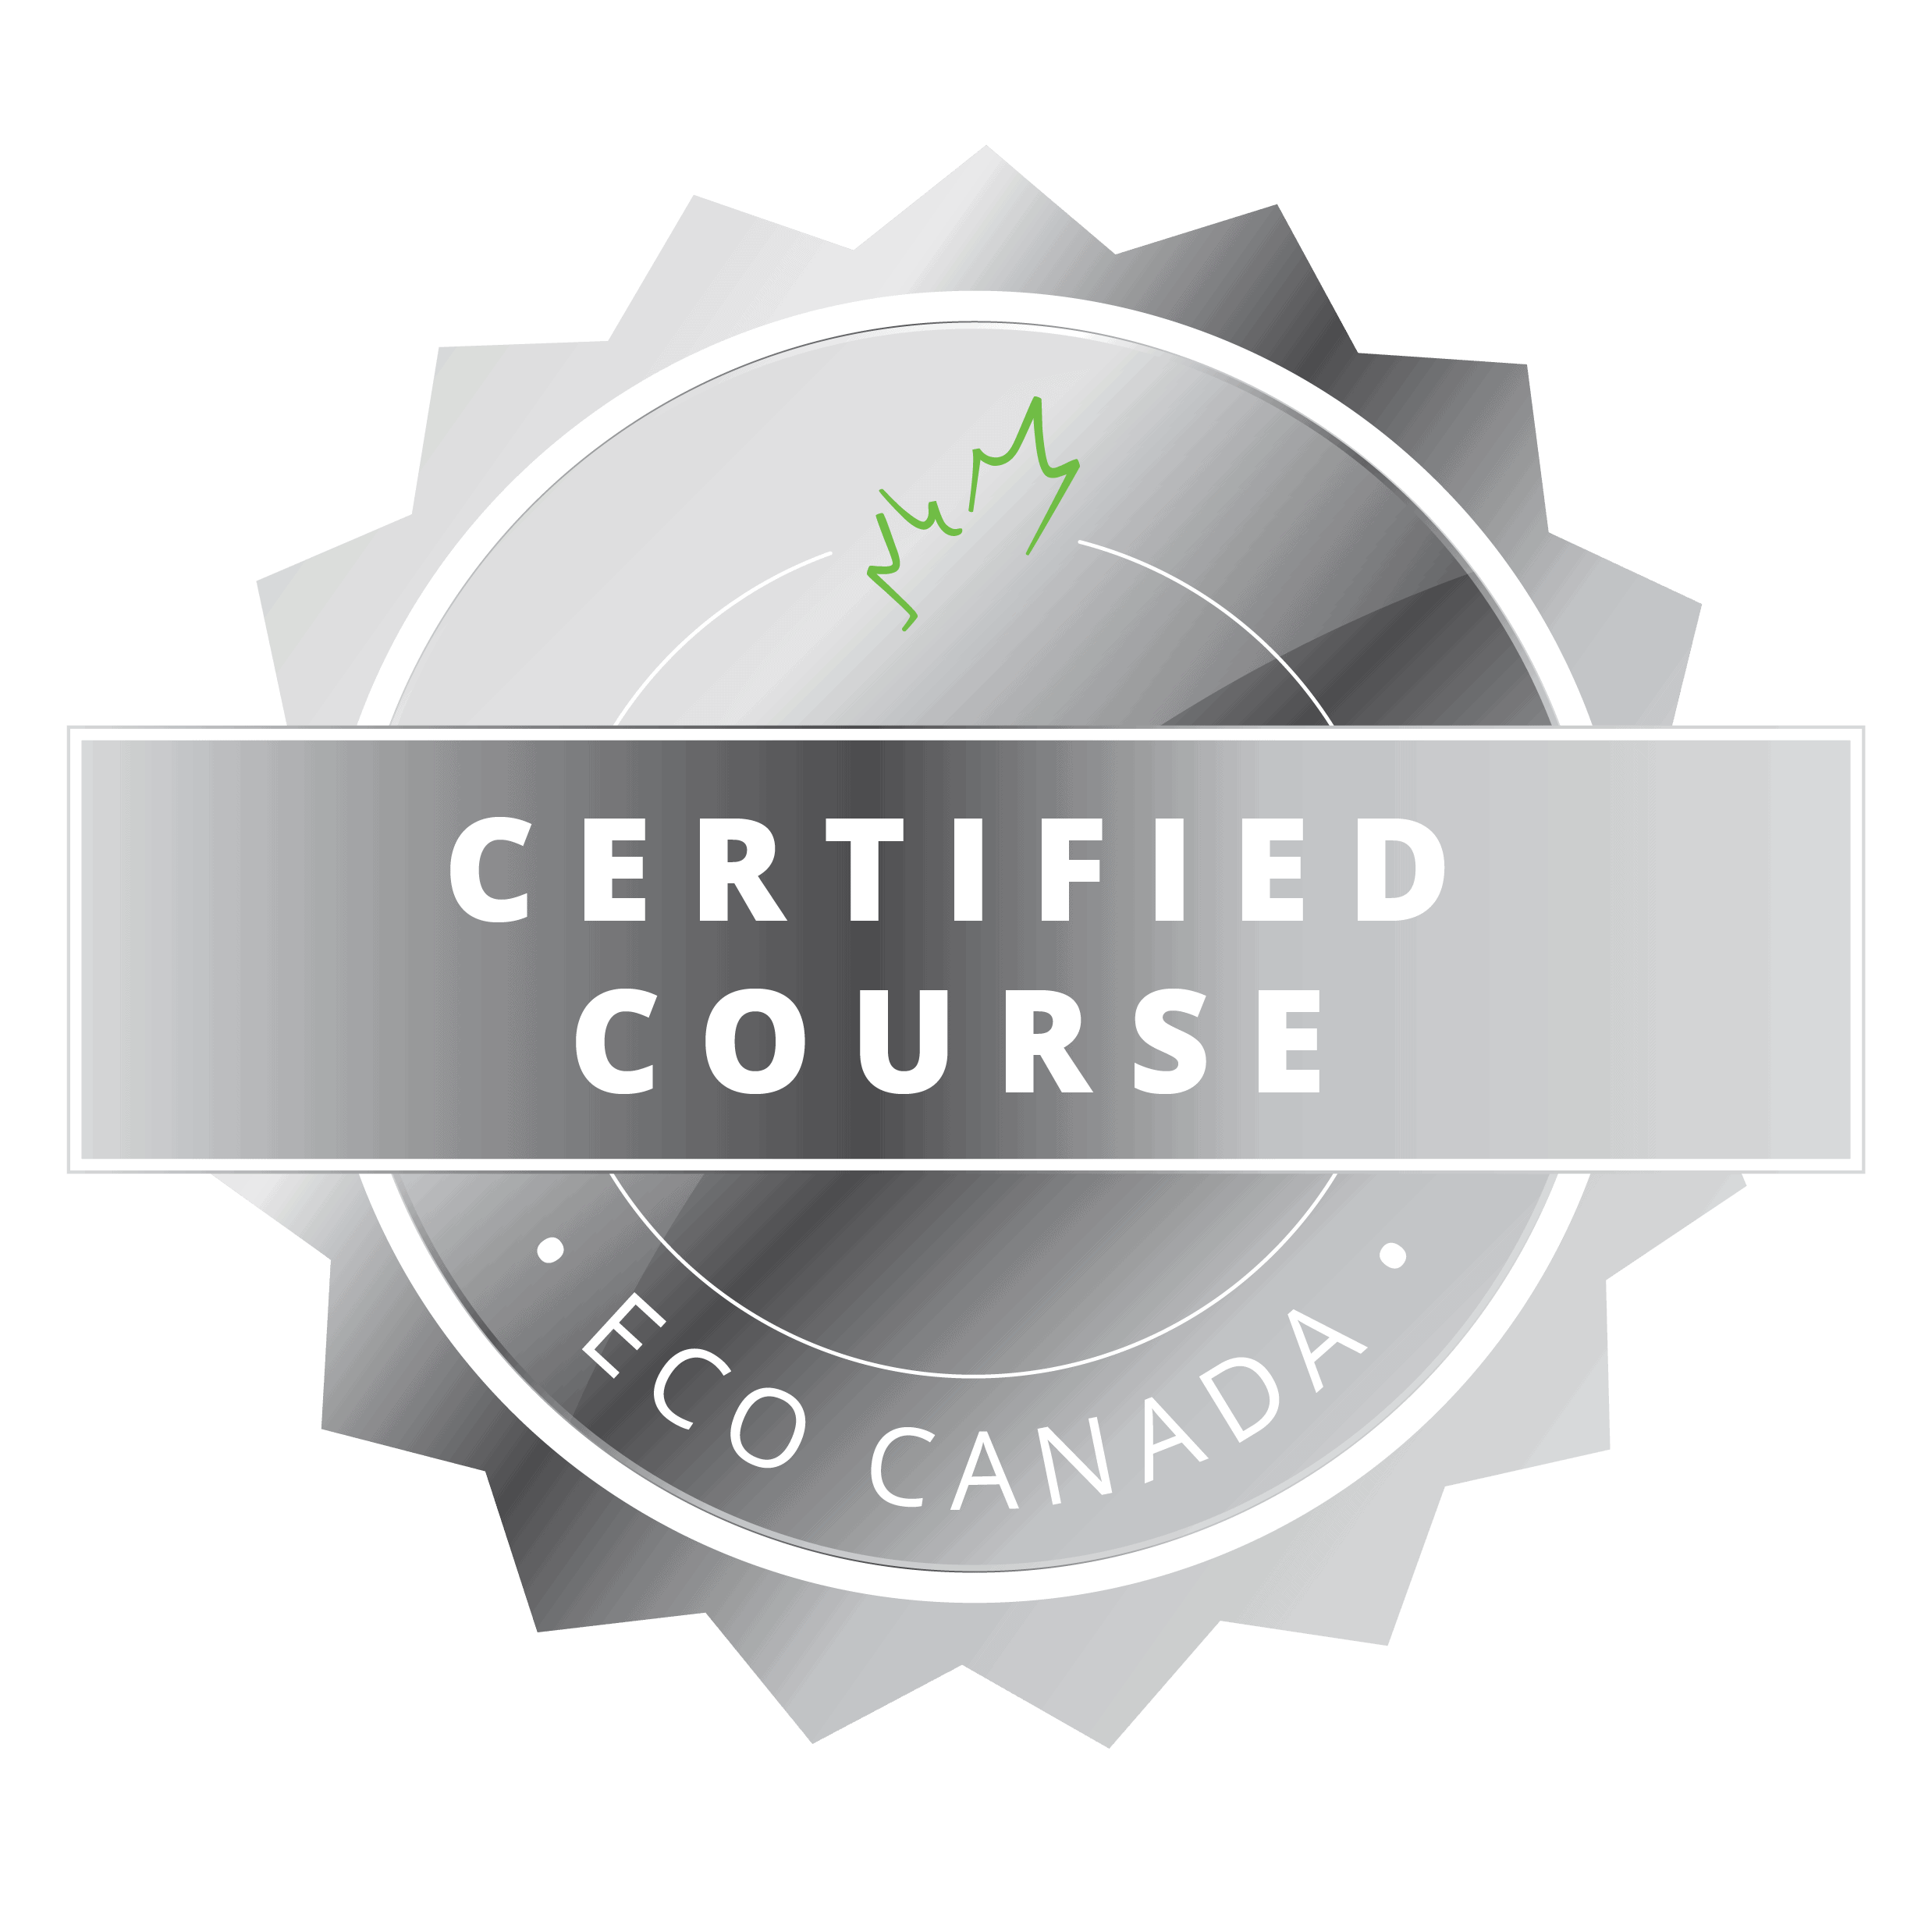 Accredit Your Training Courses